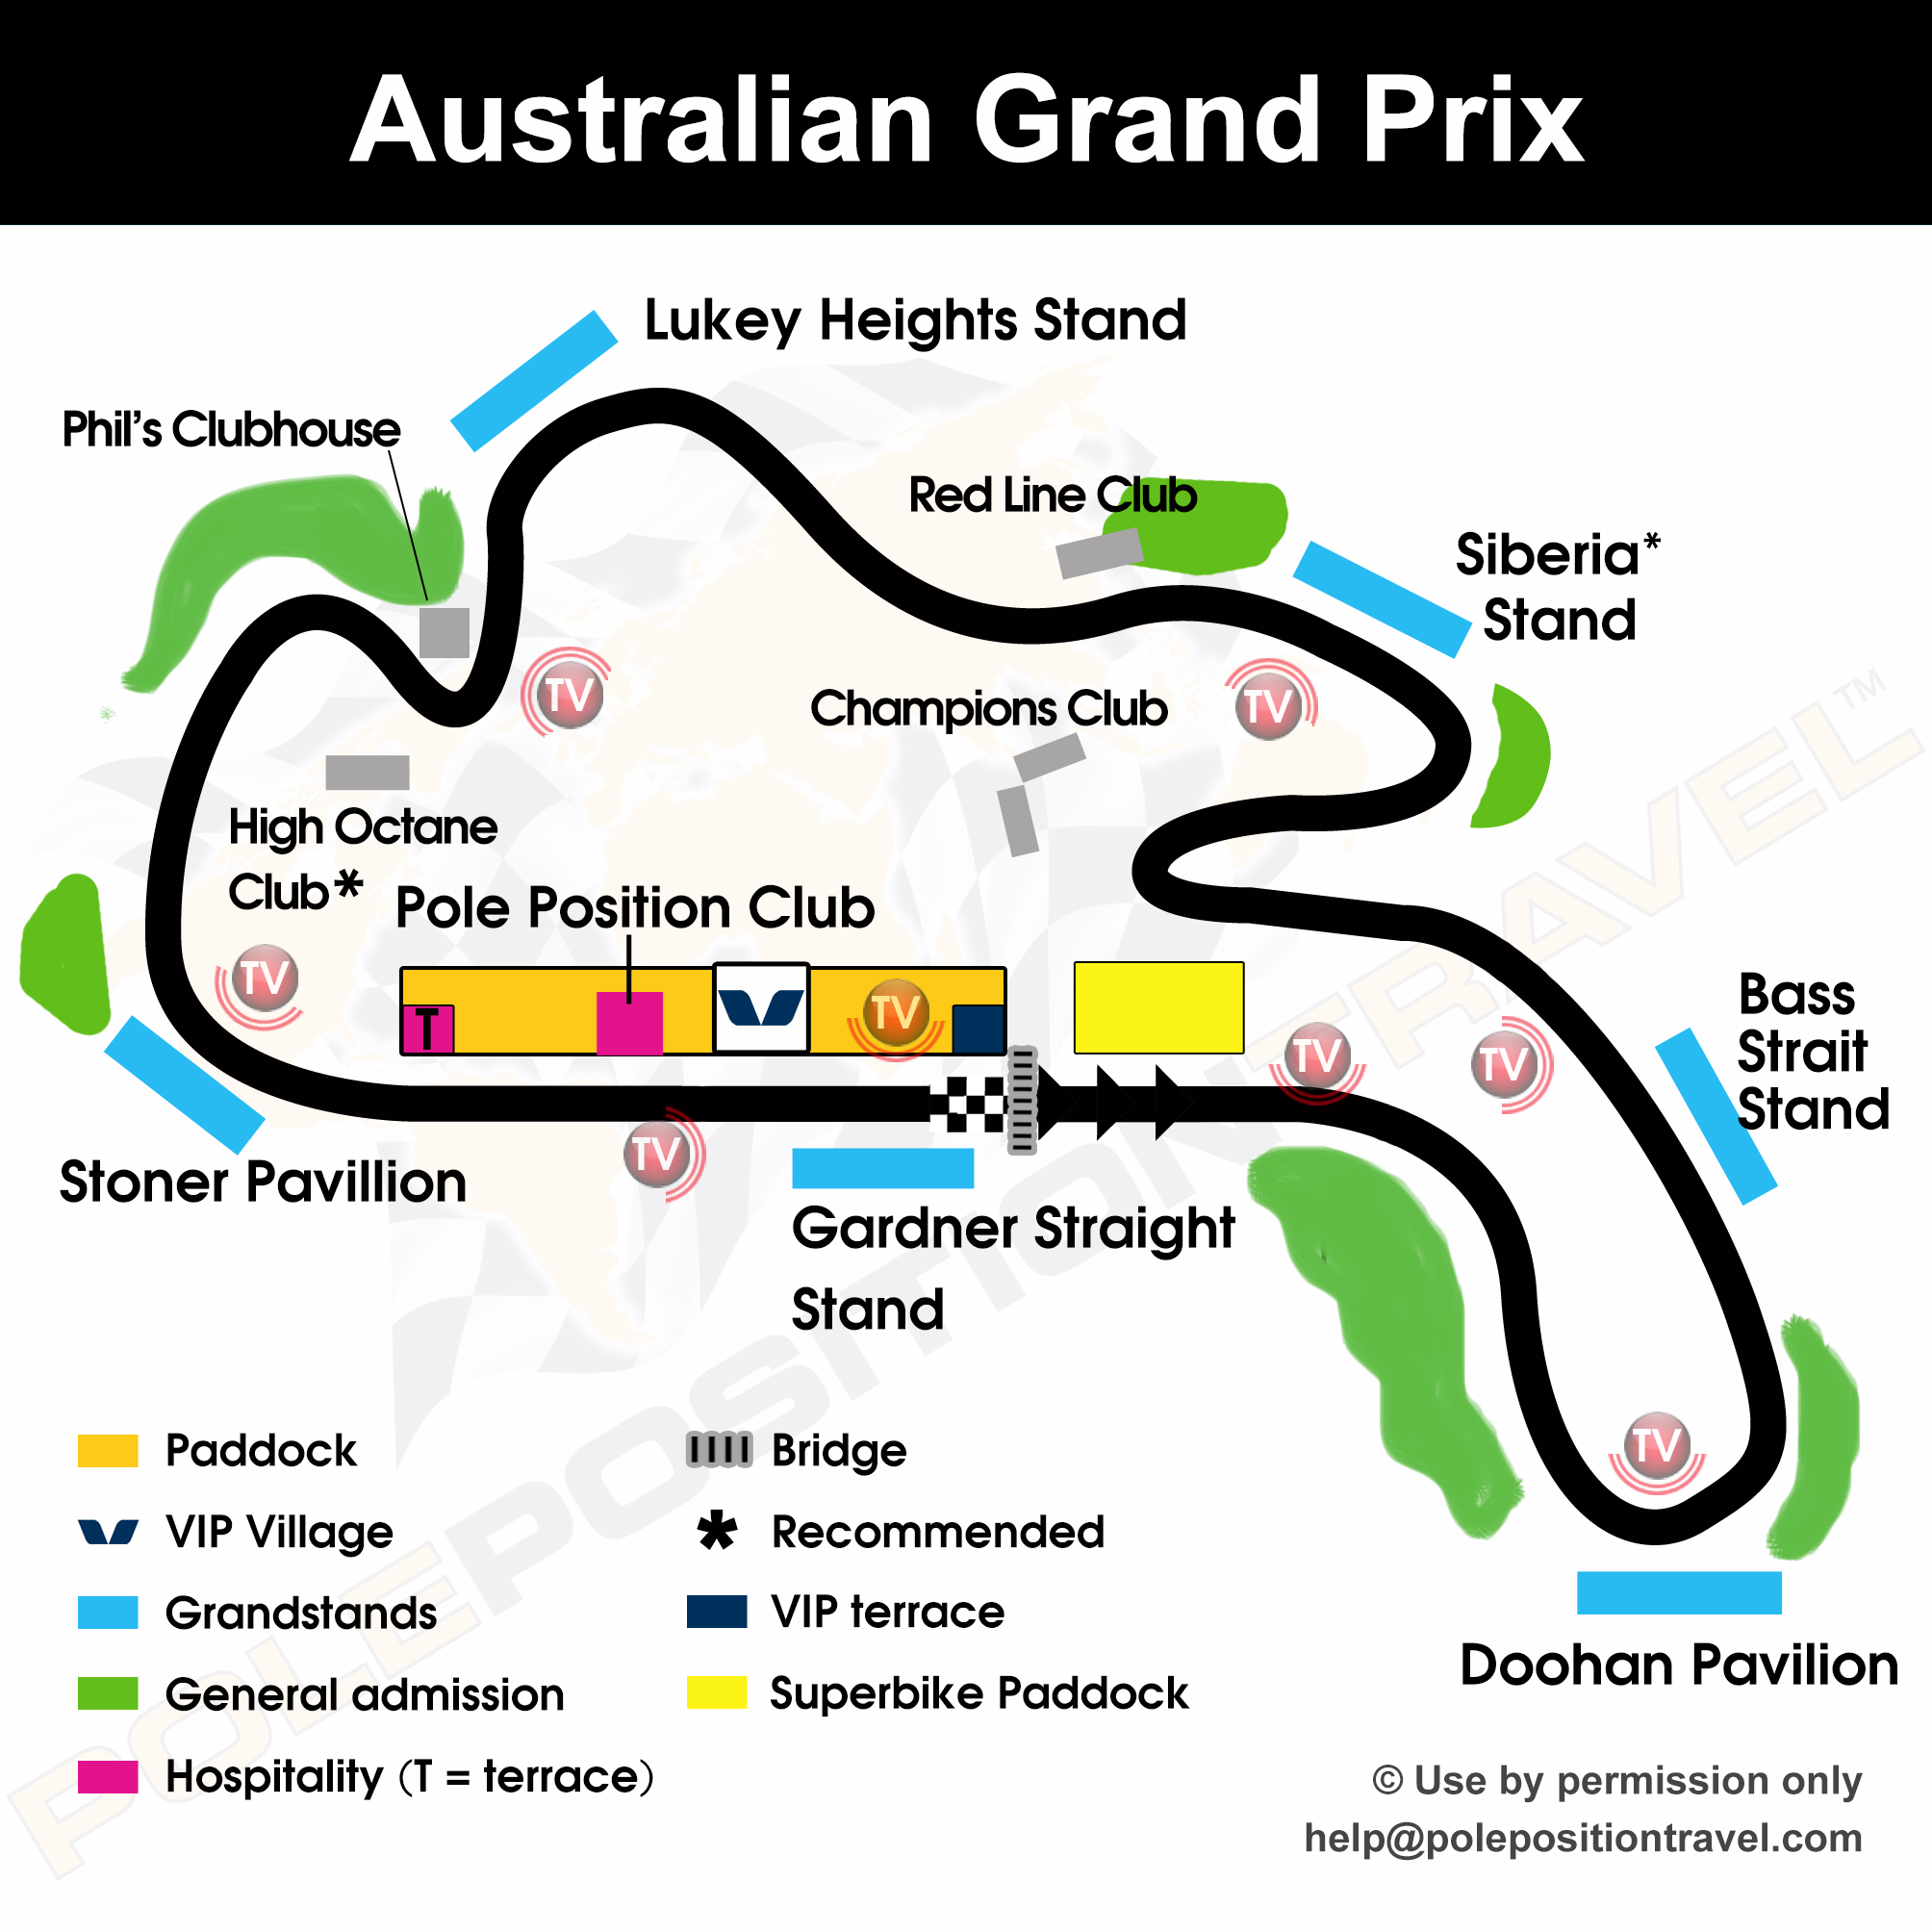 MotoGP Phillipisland 2018 - Tickets - Australian Grand Prix - Weekend tours,VIP packages ...